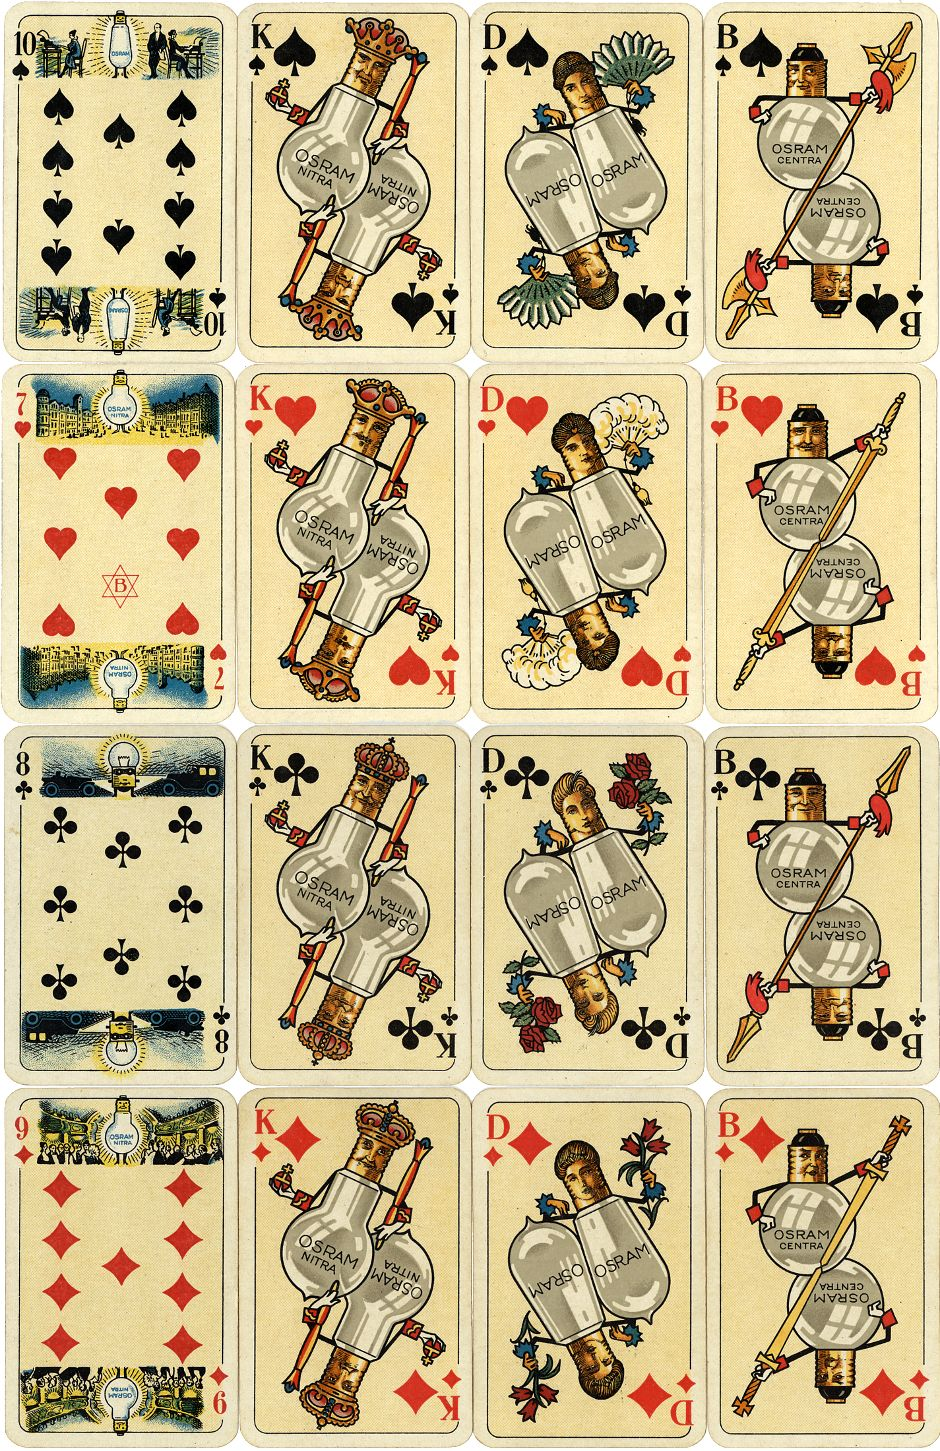 Osram advertising playing cards printed during the 1930s by Vereinigte Stralsunder Spielkartenfabriken (V.S.S.), Altenburg, Germany